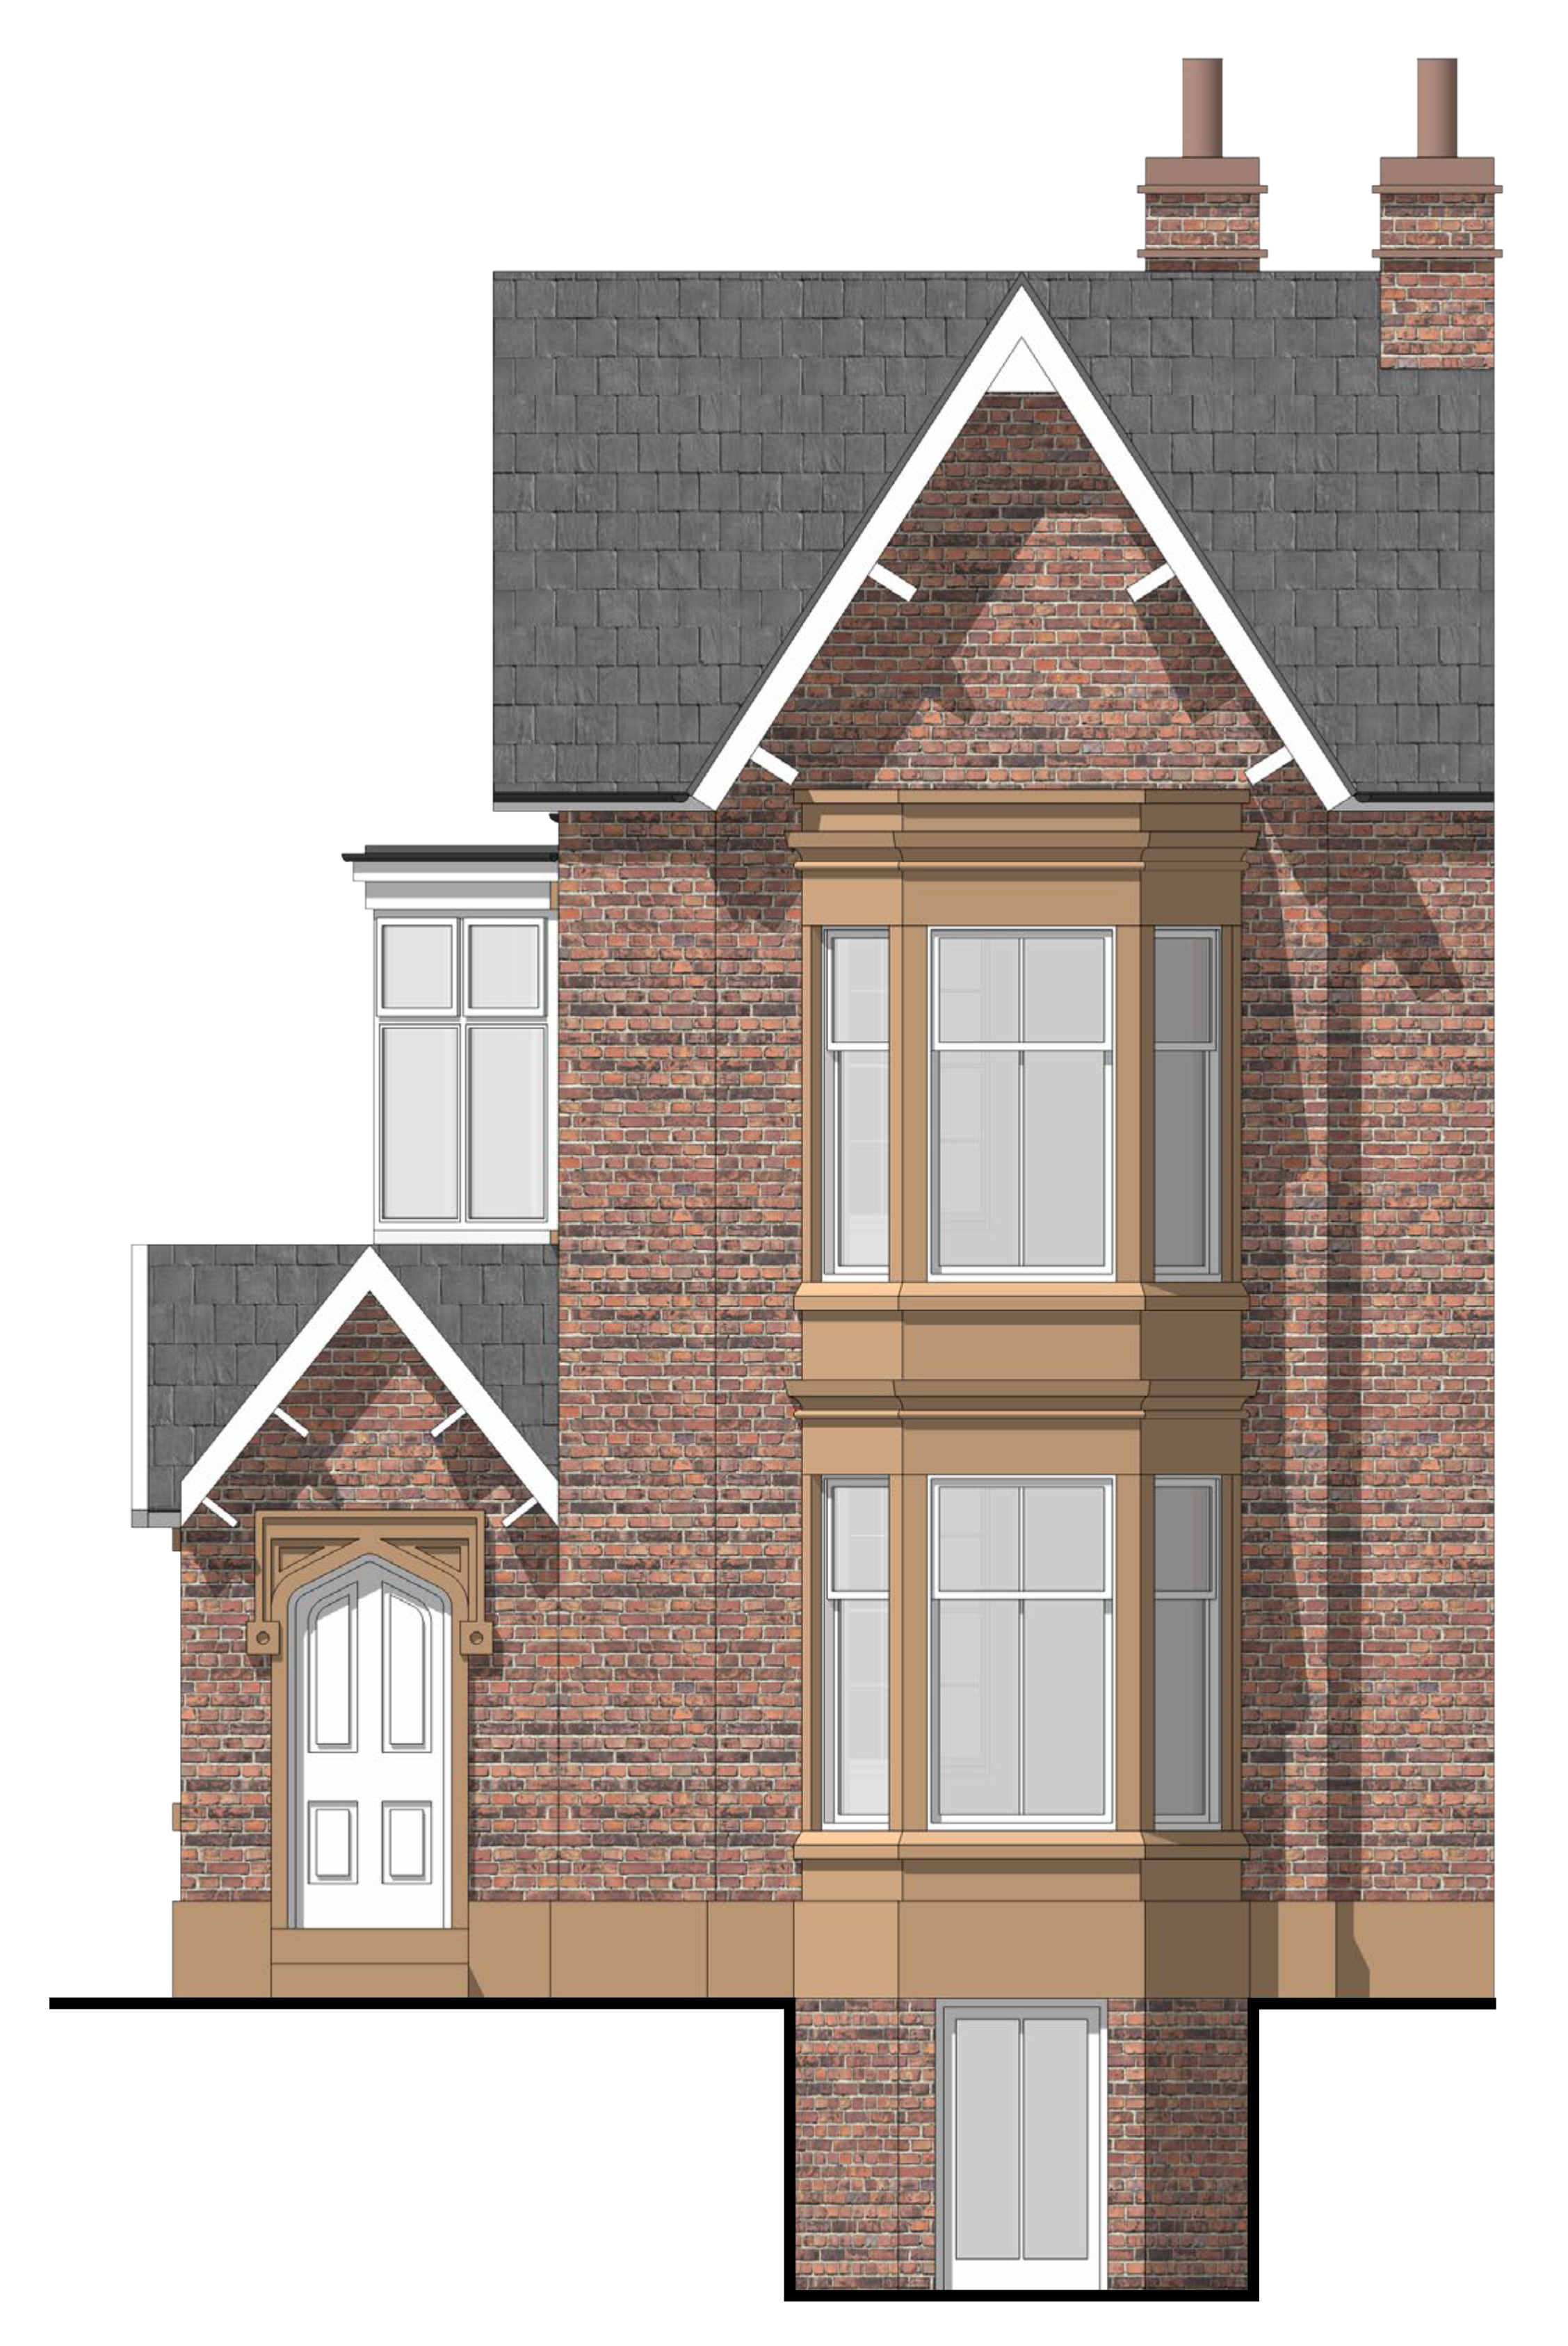 WEST BEACH LISTED BUILDING PROJECT